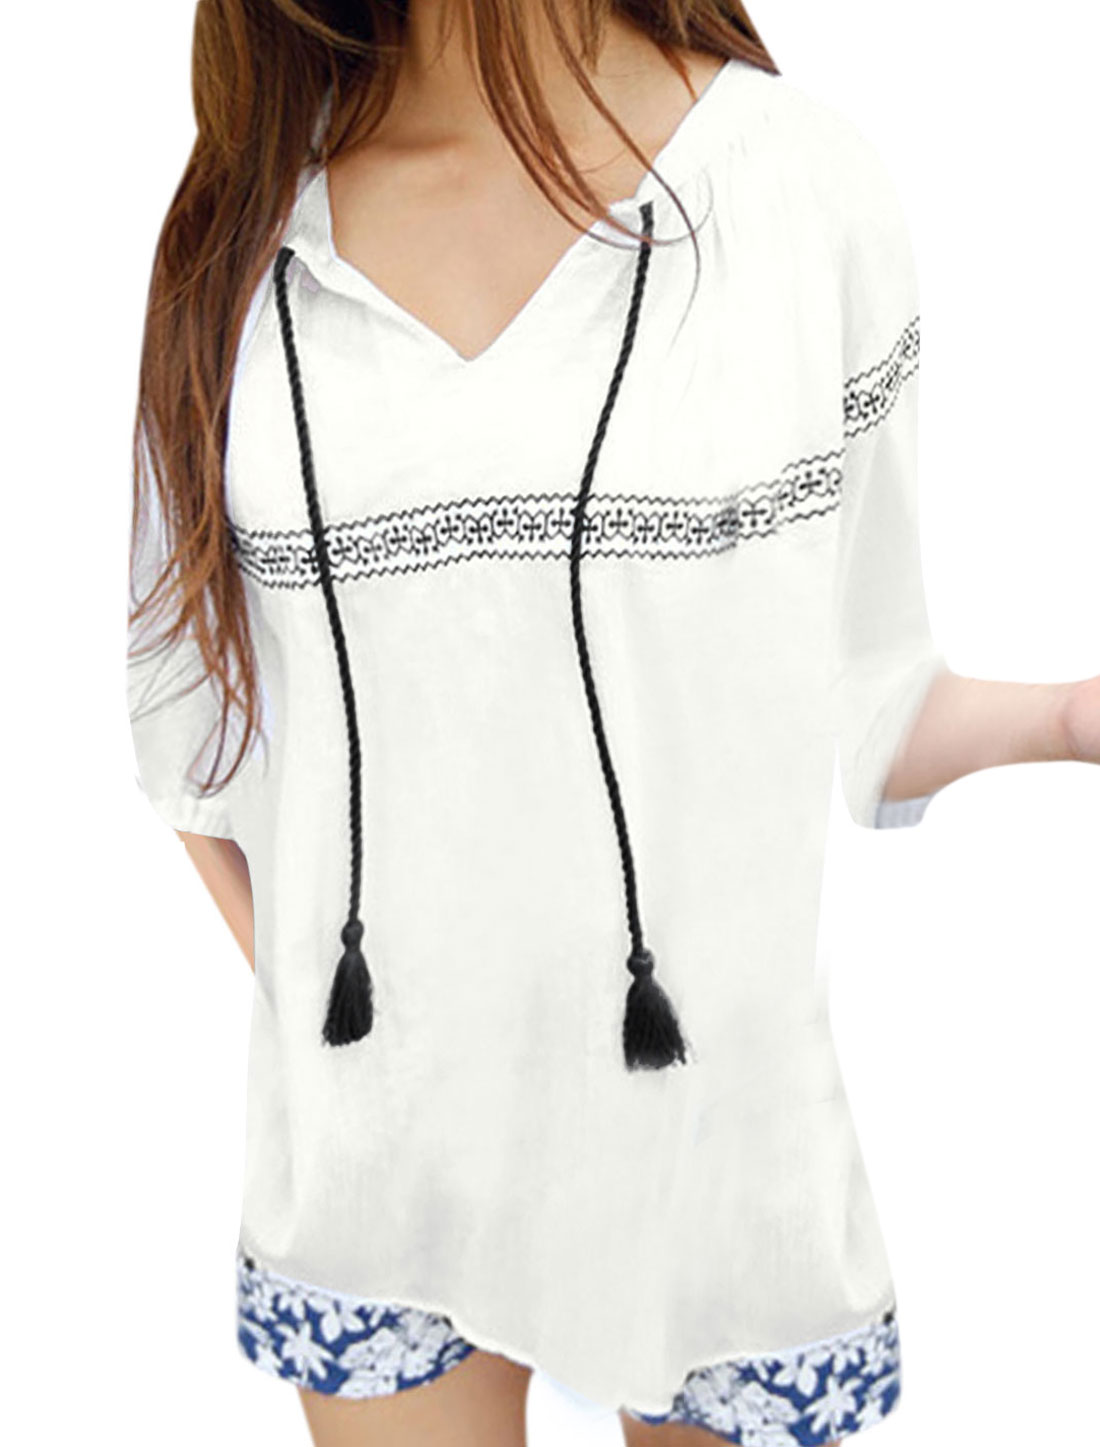 Lady Elastic Cuffs Embroidery Detail Chiffon Shirt White XS